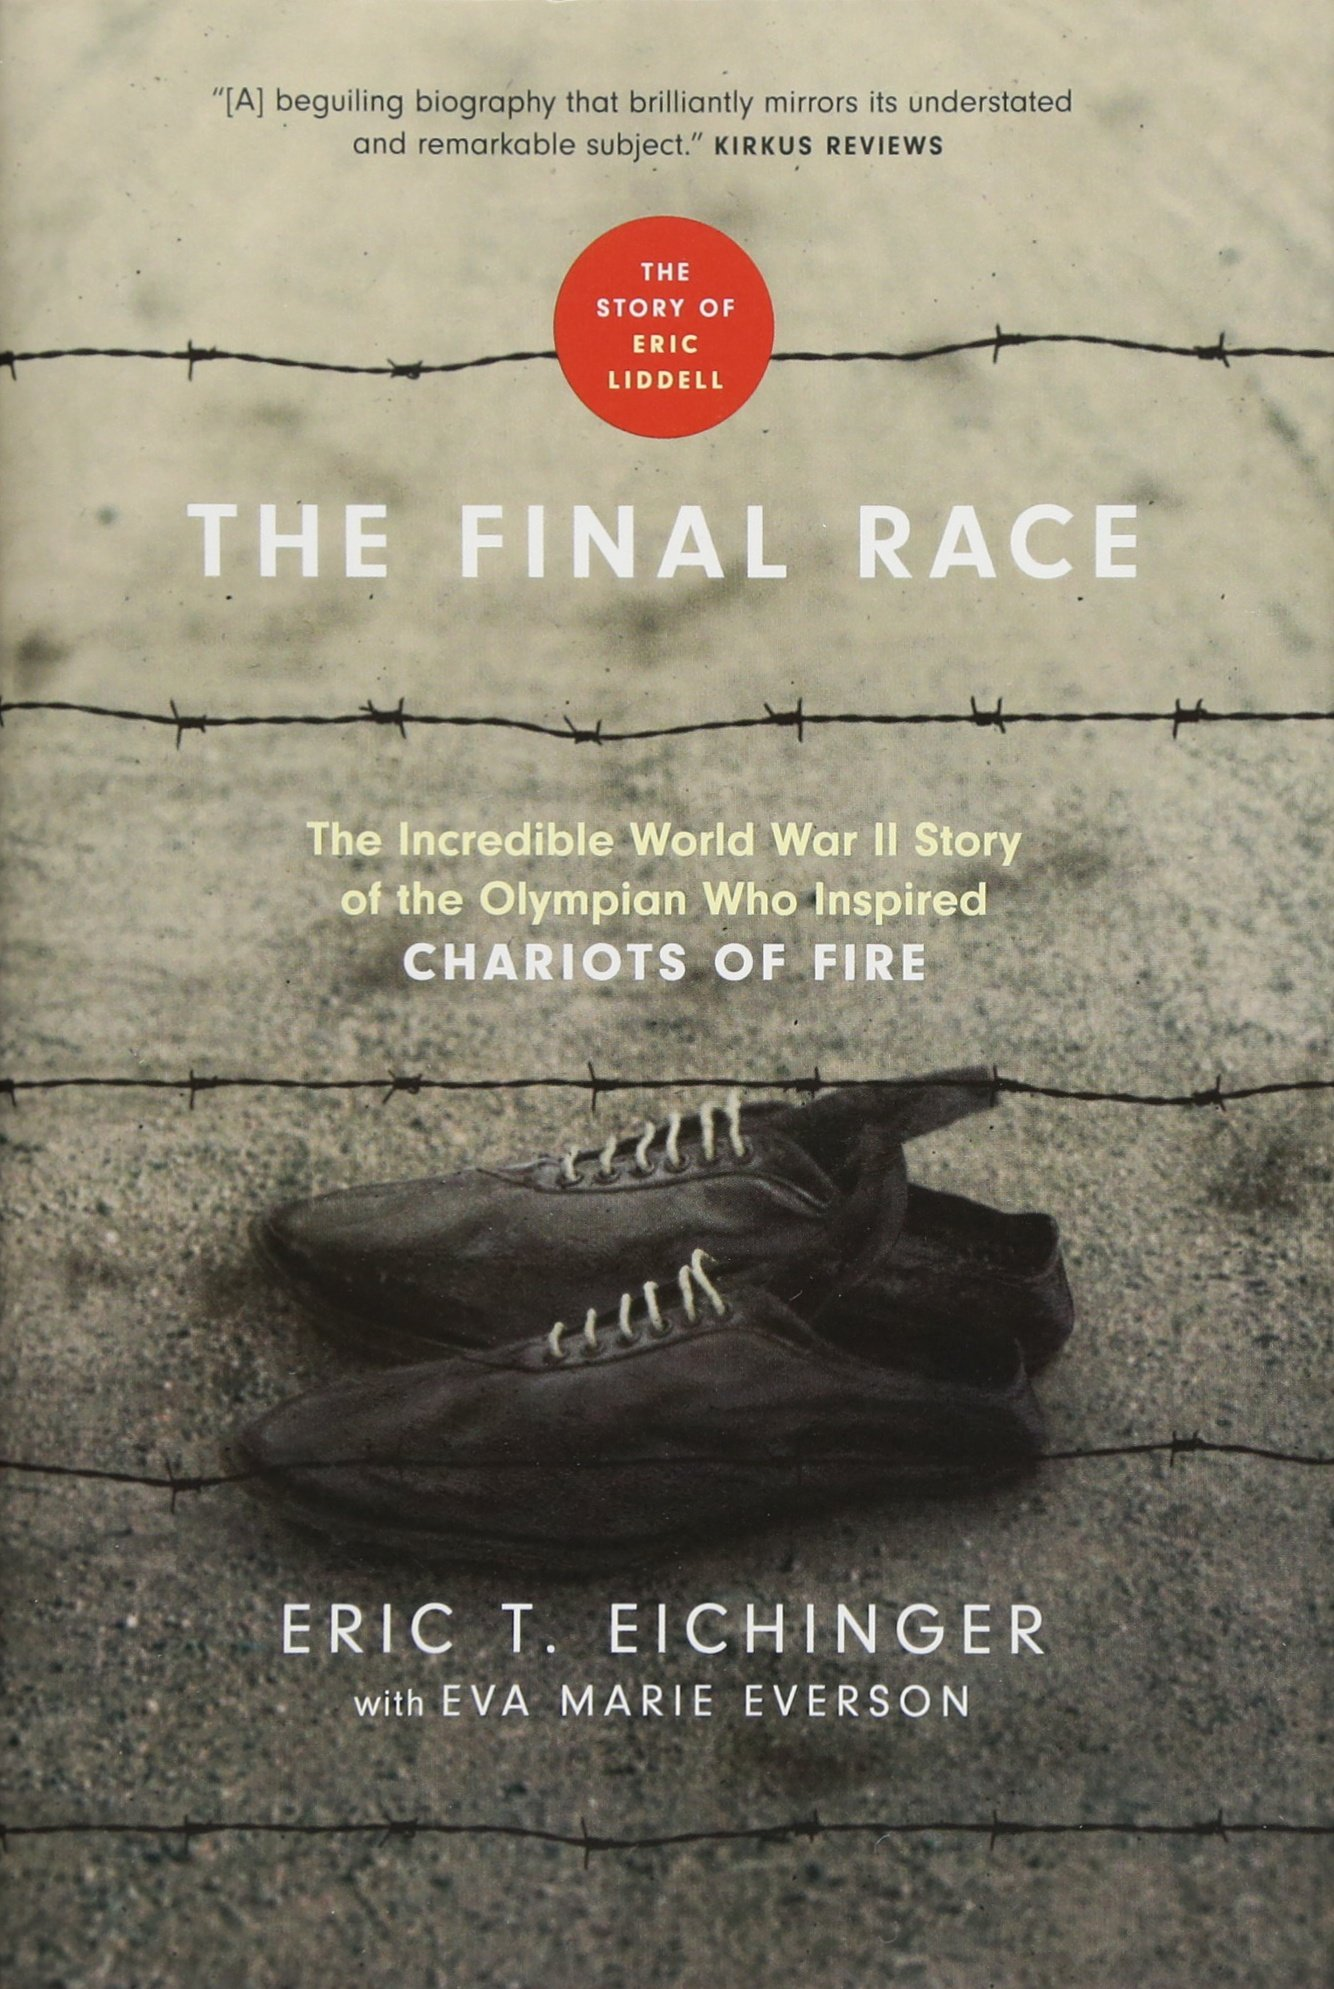 Amazon.com: The Final Race: The Incredible World War II Story of the  Olympian Who Inspired Chariots of Fire (9781496419941): Eric T. Eichinger,  ...